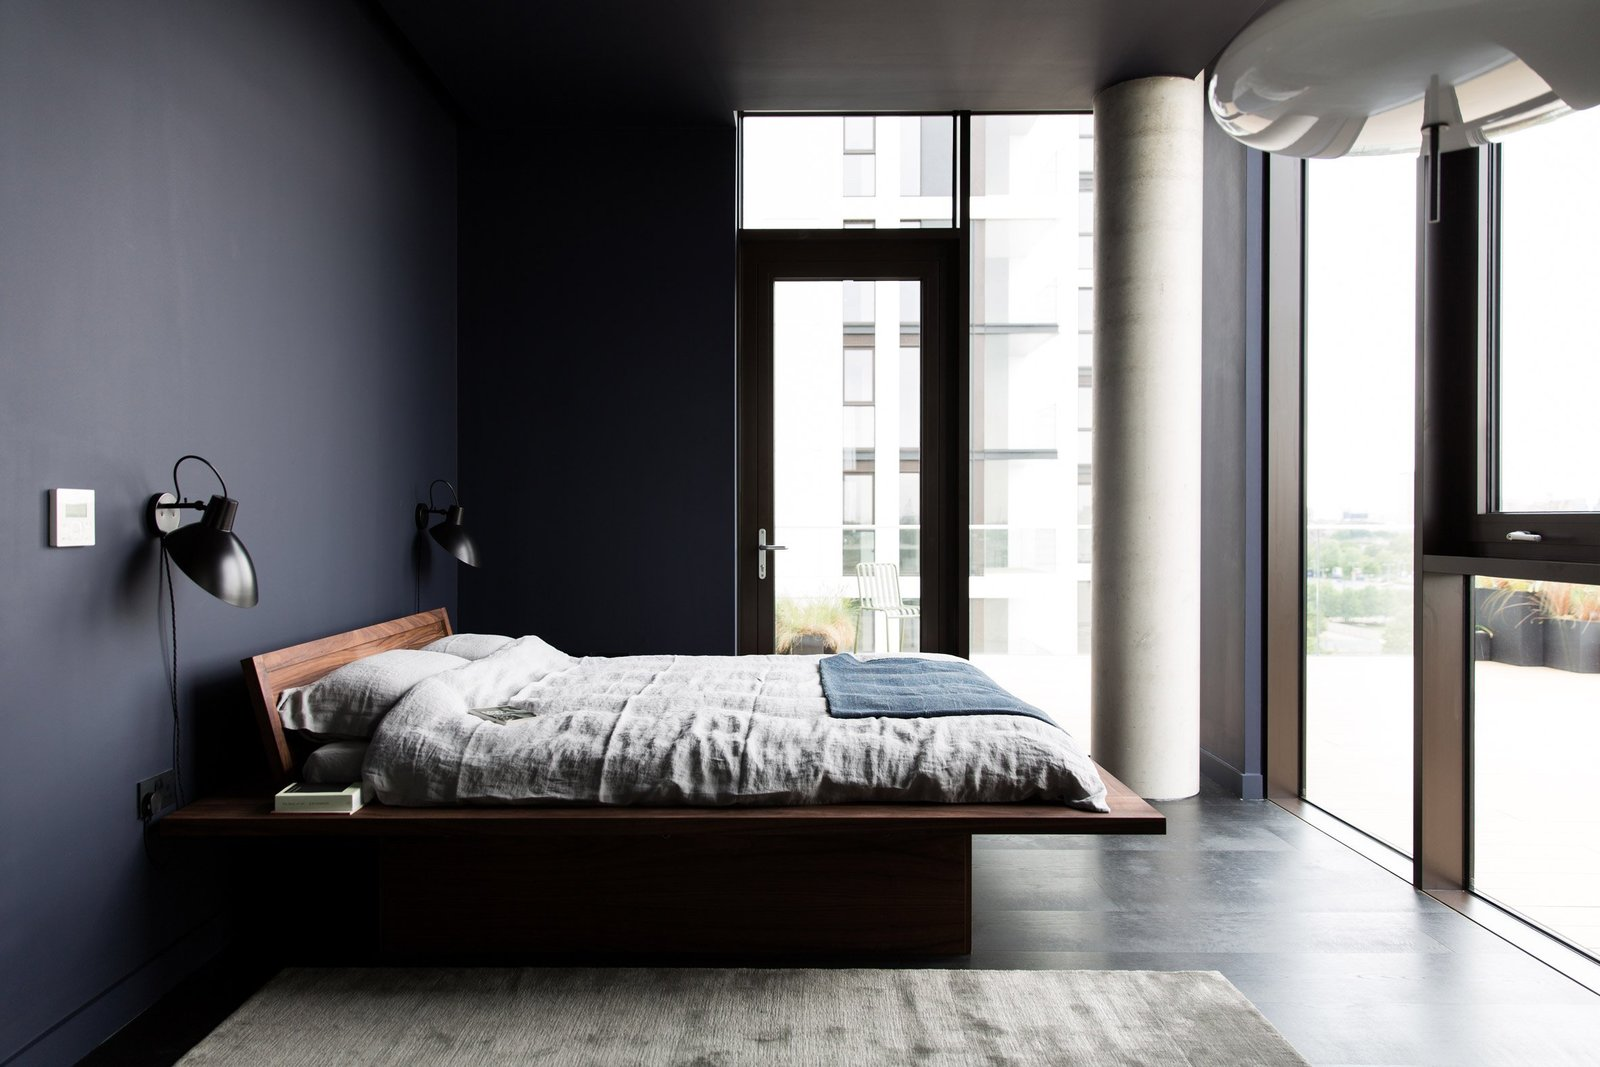 Bedroom, Bed, Wall Lighting, and Dark Hardwood Floor  Photo 8 of 13 in For Just Under $2 Million, You Could Live in a London Penthouse Outfitted by Cereal Magazine